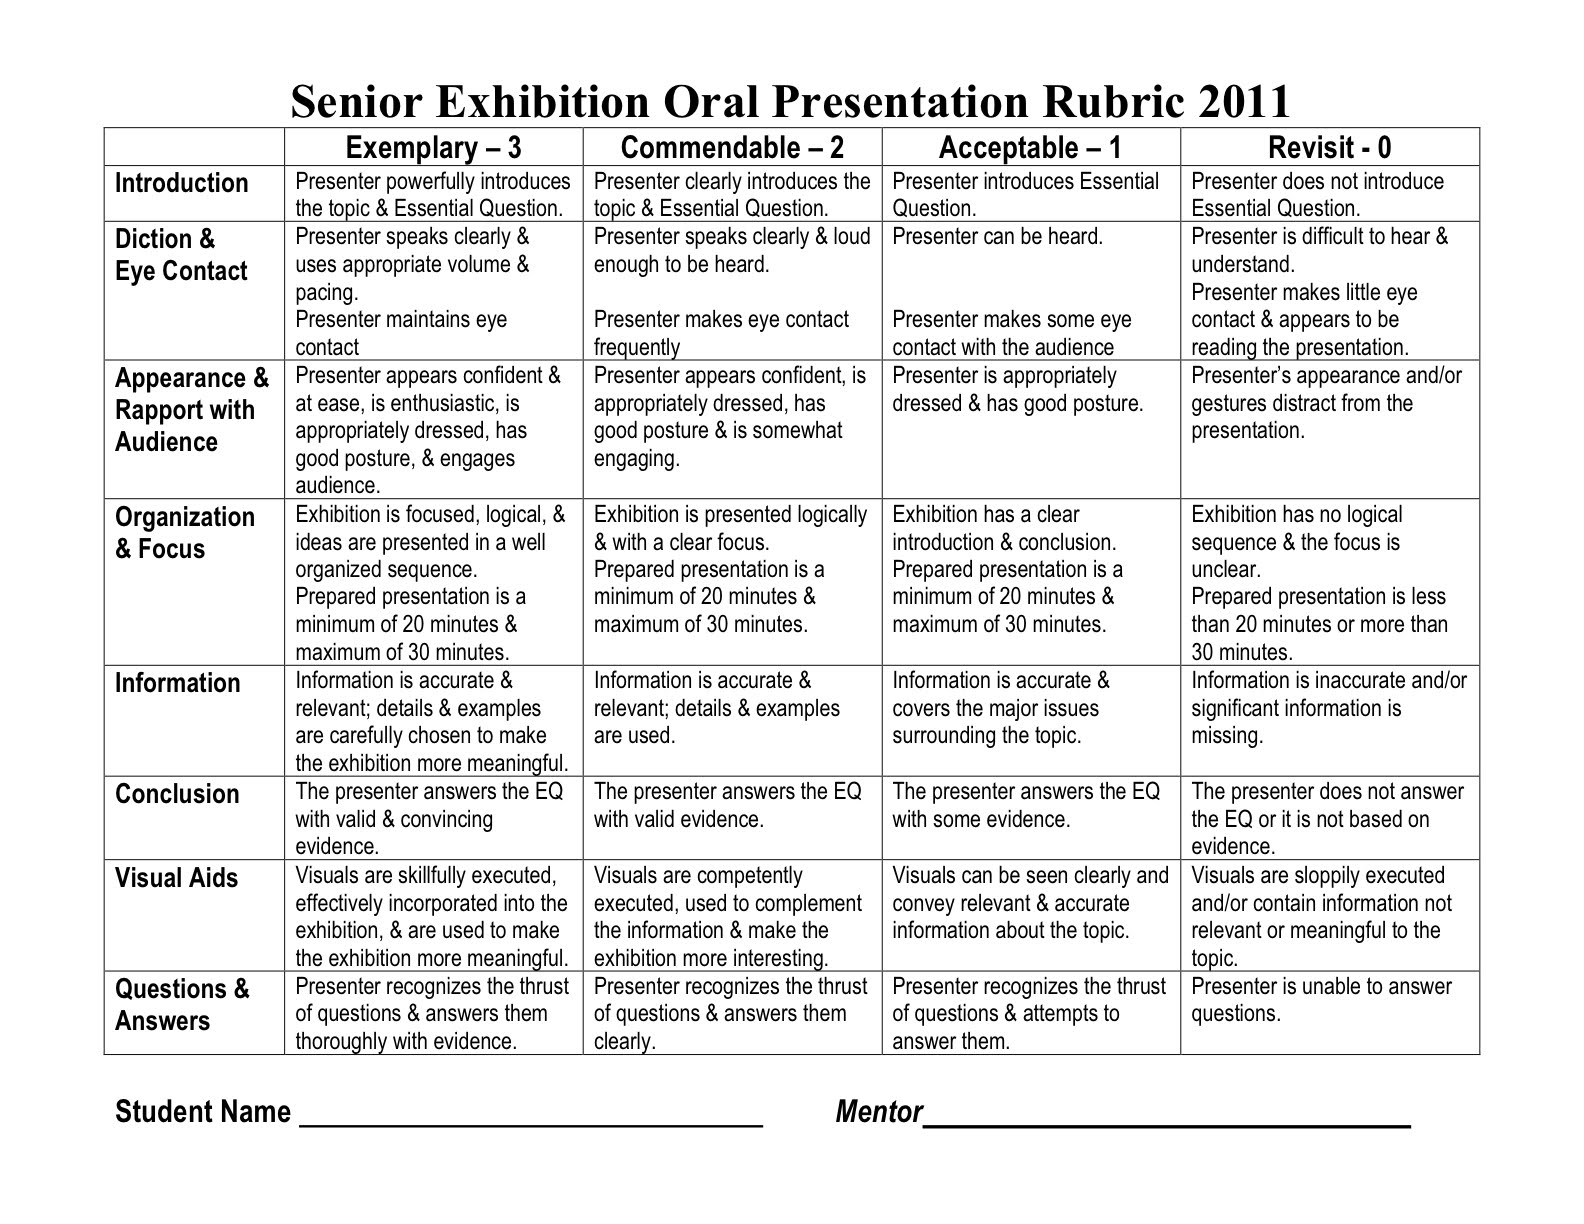 Rubric for Evaluating Senior Research